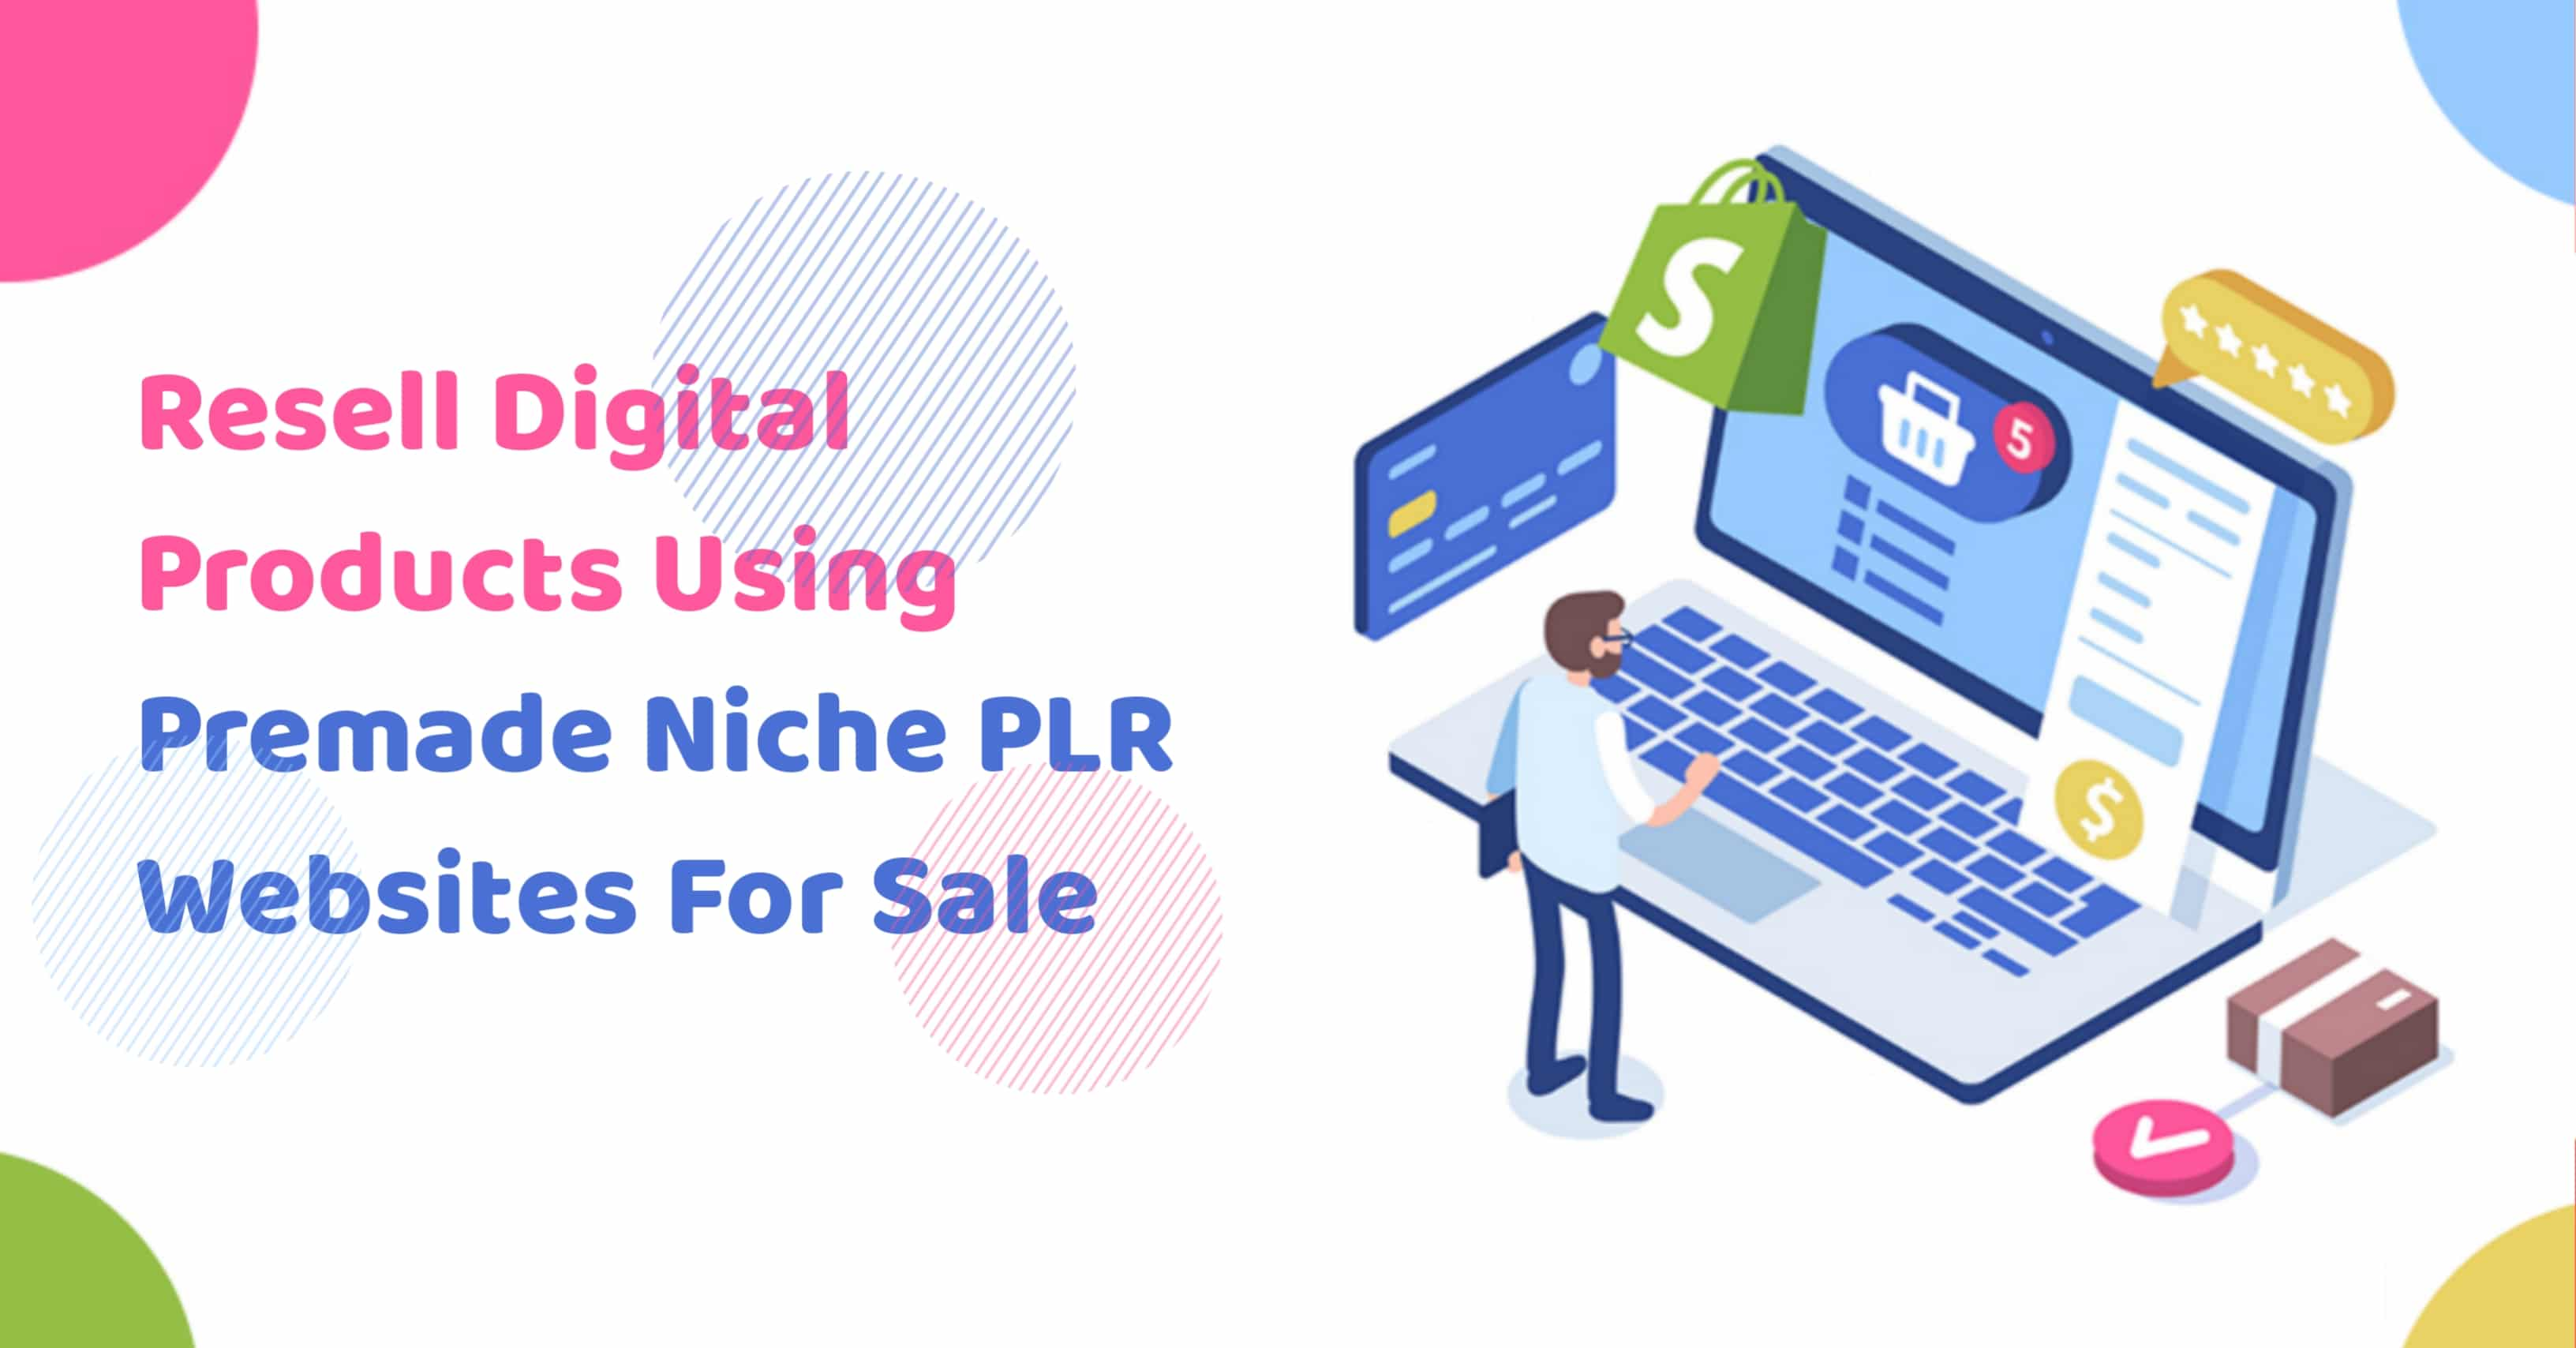 Resell Digital Products Using Premade Niche PLR Websites For Sale